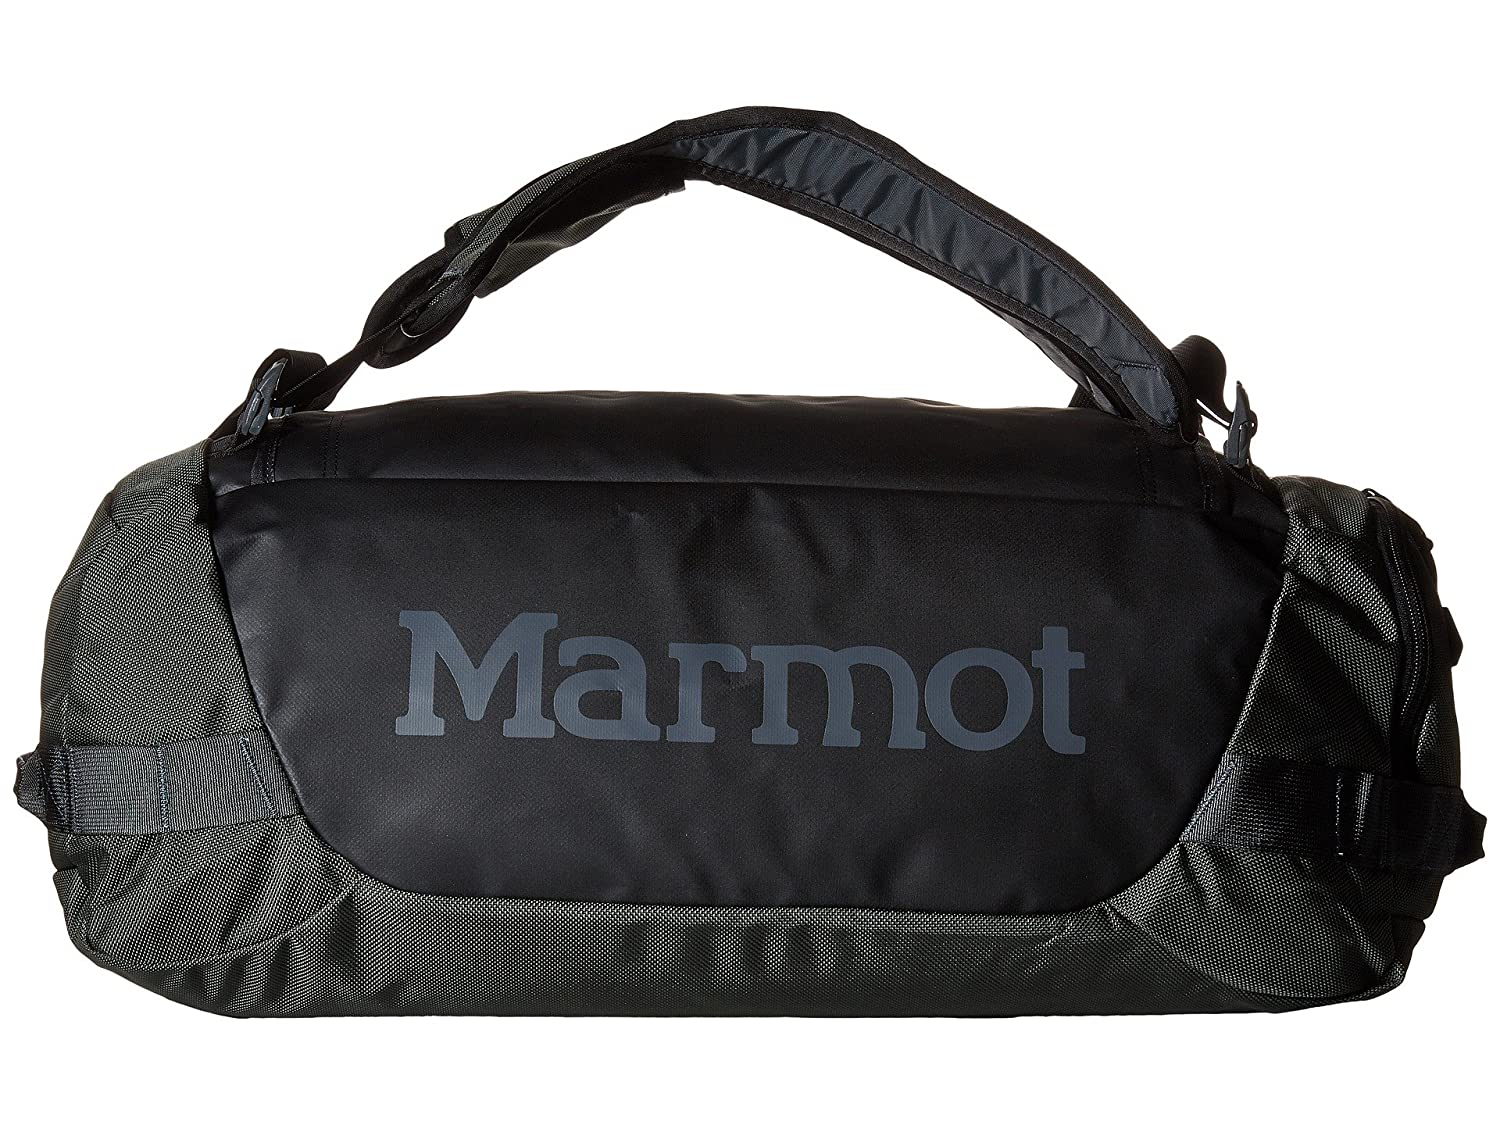 [マーモット] Marmot レディース Long Hauler Duffle Bag Small ダッフルバッグ Slate Grey/Black [並行輸入品] B01N2J6XTE Slate Grey/Black